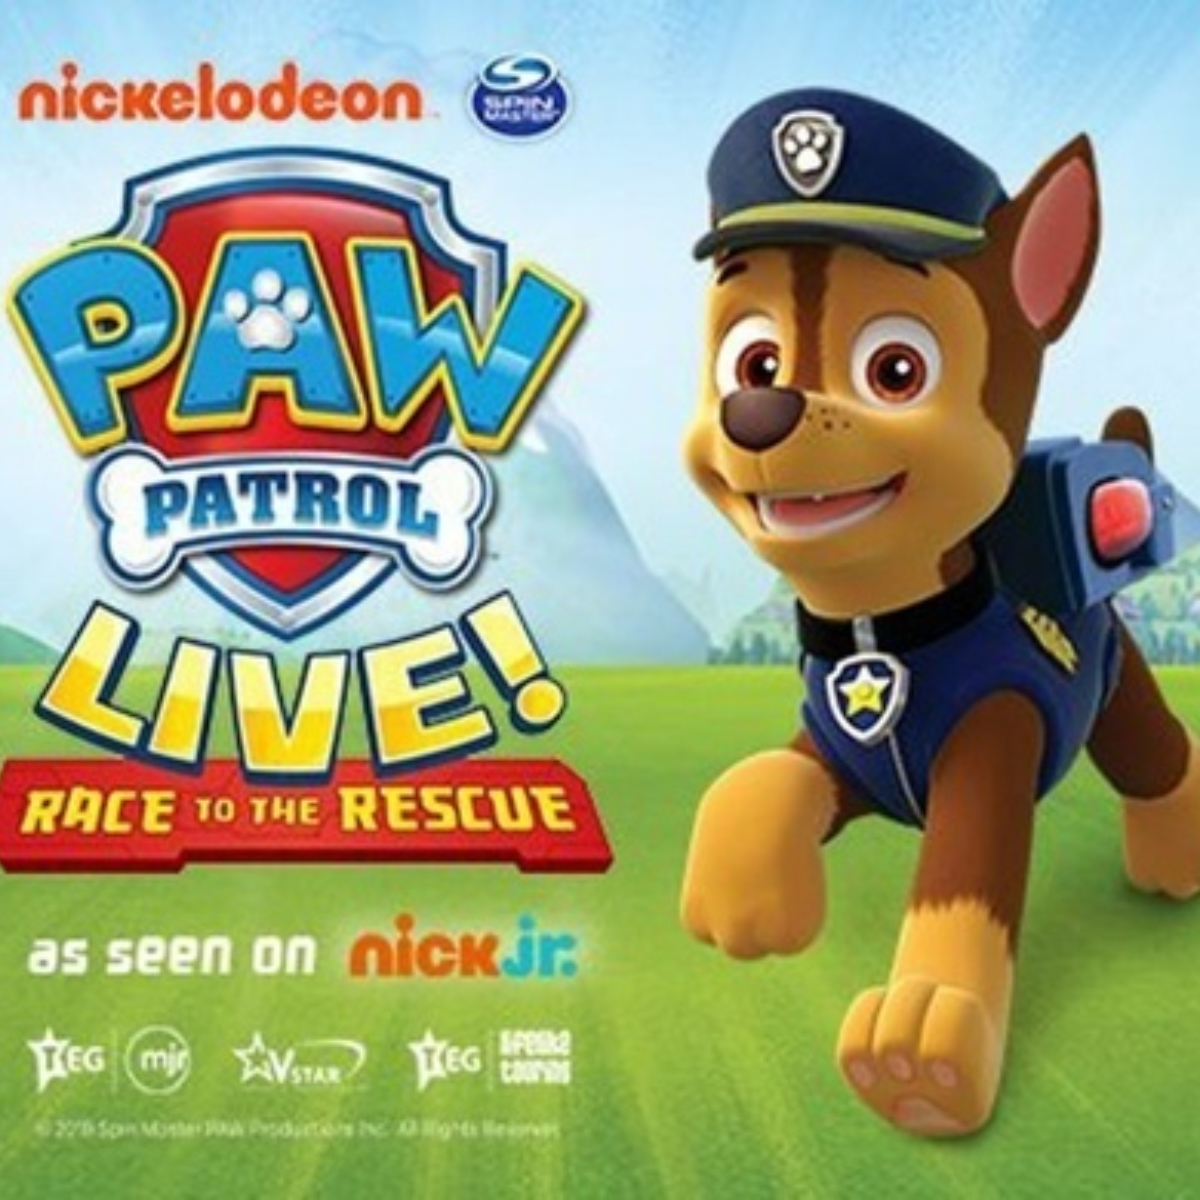 PAW PATROL LIVE! - Race to the Rescue (Brighton) Images